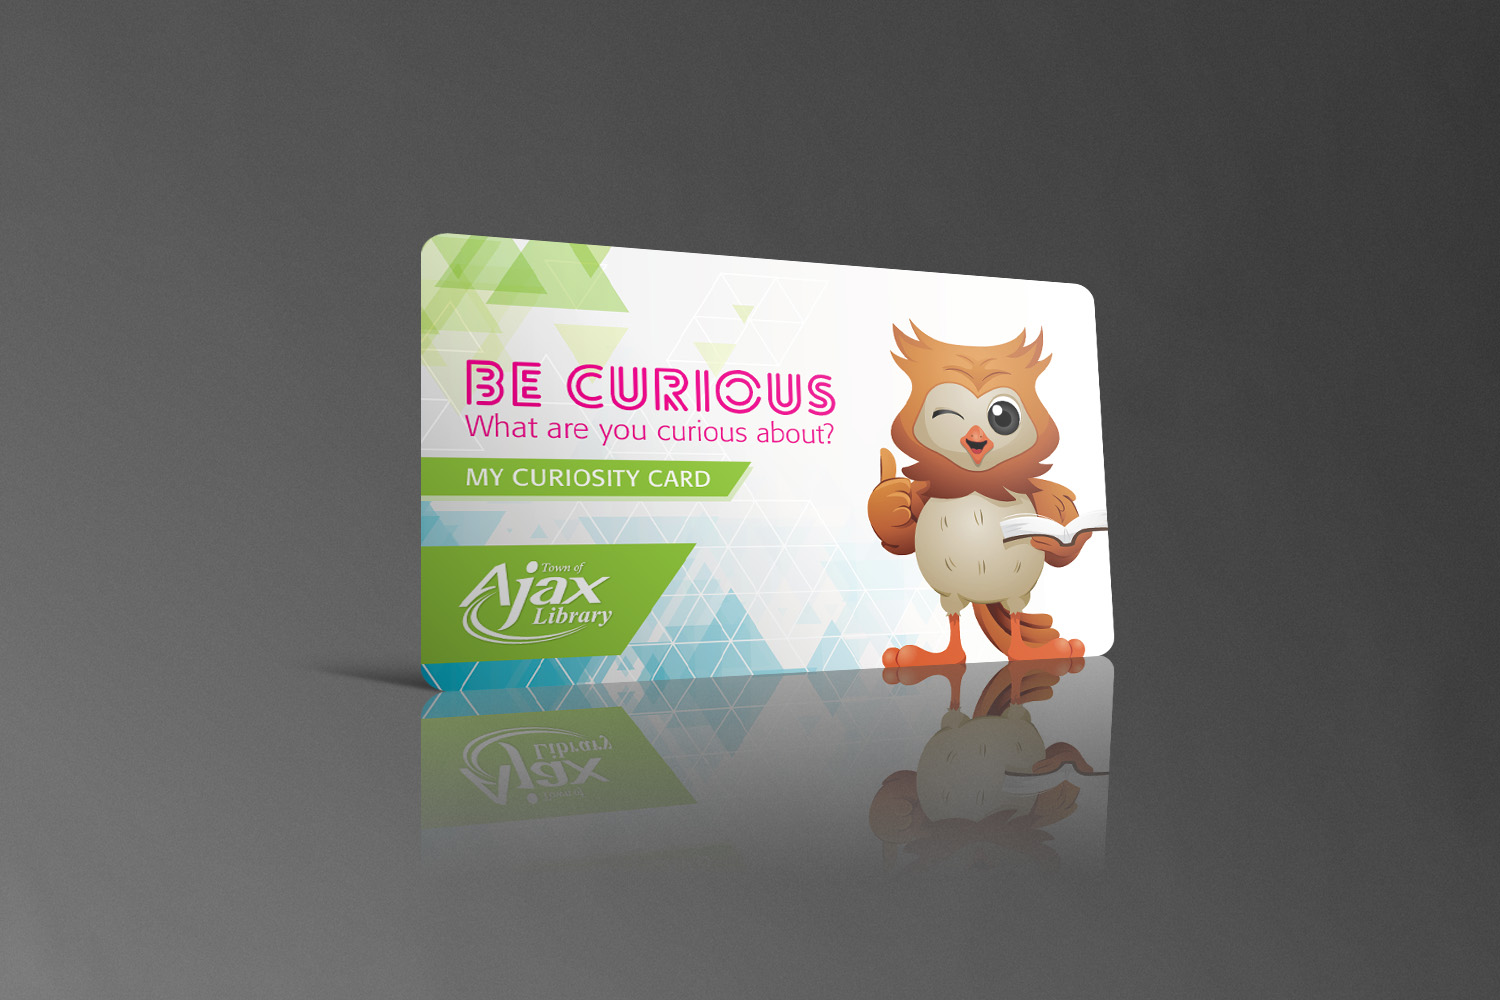 Ajax Public Library // Be Curious Library Card